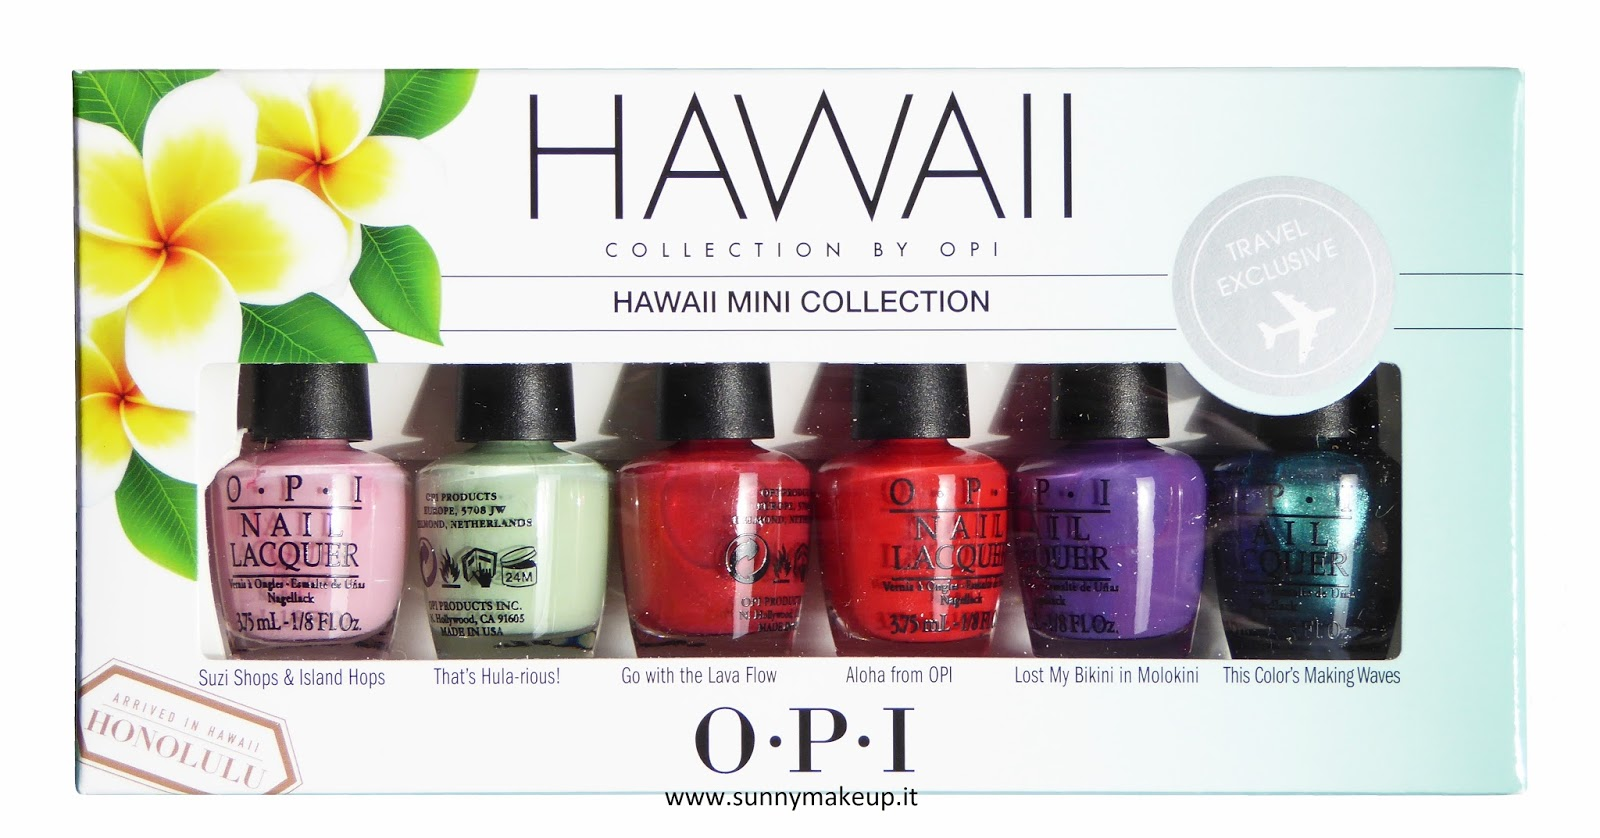 OPI - Hawaii Collection. Collezione P/E 2015. Gli smalti: Suzi Shops & Island Hops, That's Hula-rious!, Go With The Lava Flow, Aloha From OPI, Lost My Bikini In Molokini, This Color's Making Waves.